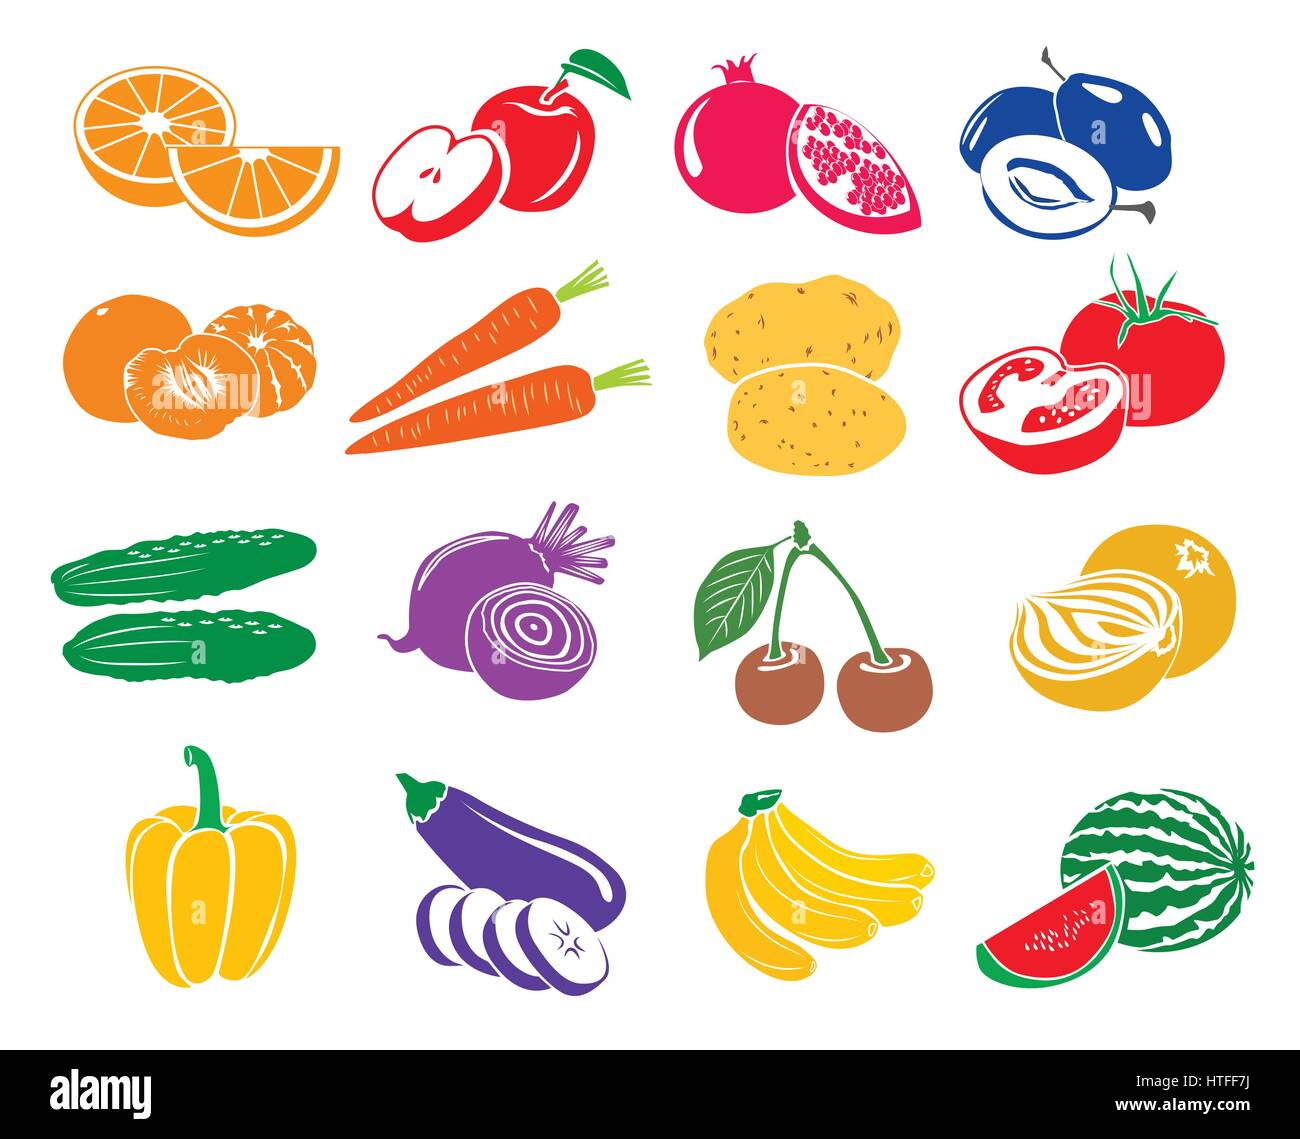 Fruits and vegetables set icons - Stock Vector